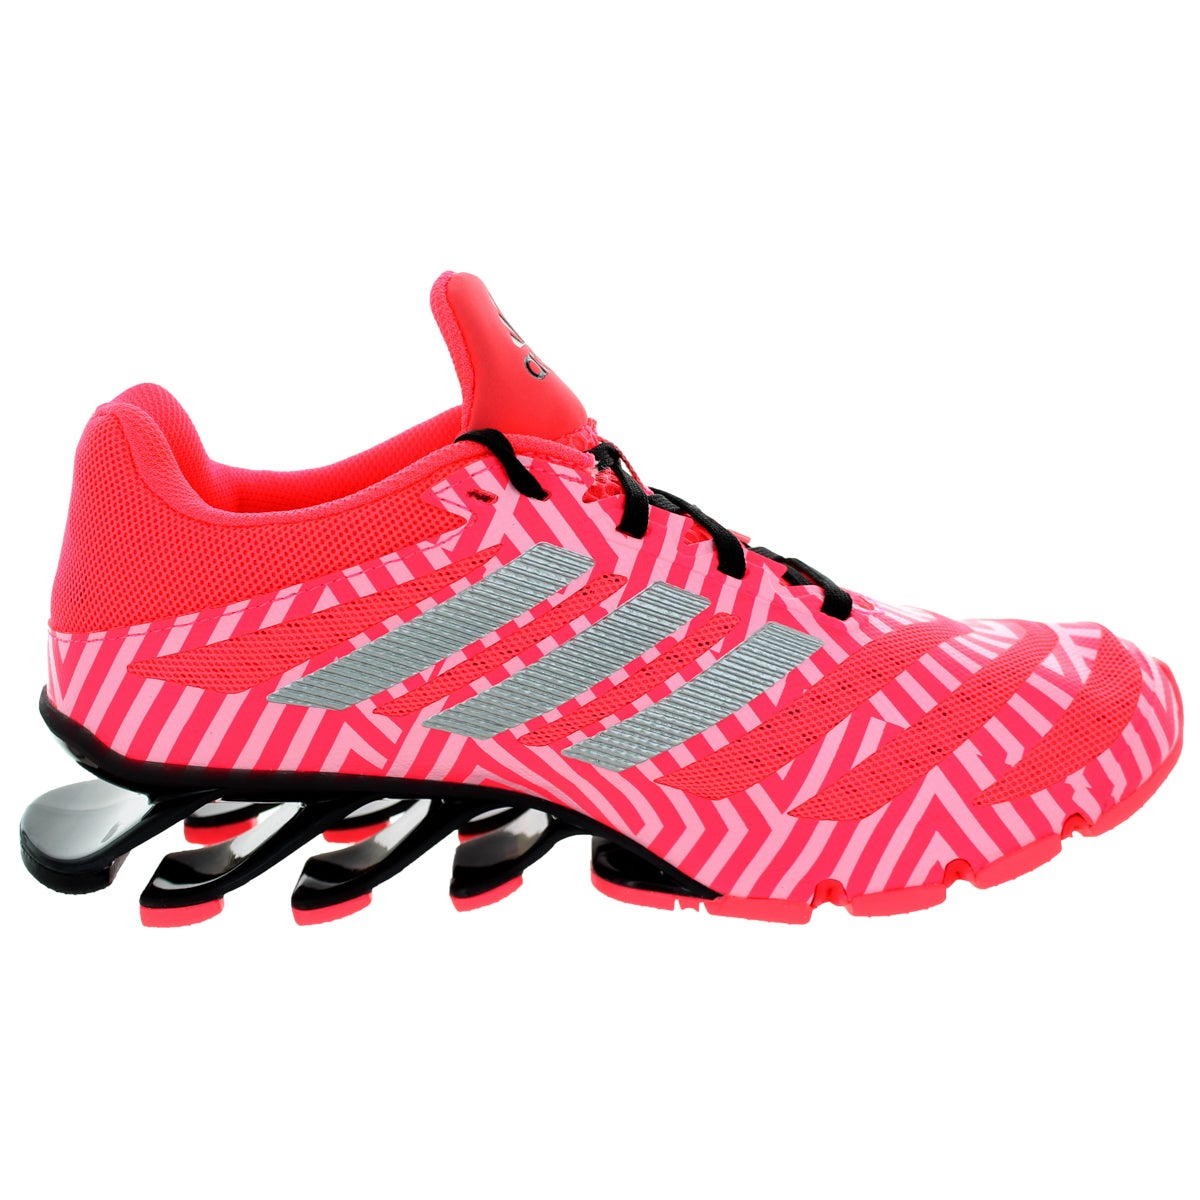 sale retailer 7b2cd 47030 Shop Adidas Women s Springblade Ignite W Pinkver White Running Shoe - Free  Shipping Today - Overstock - 12175262